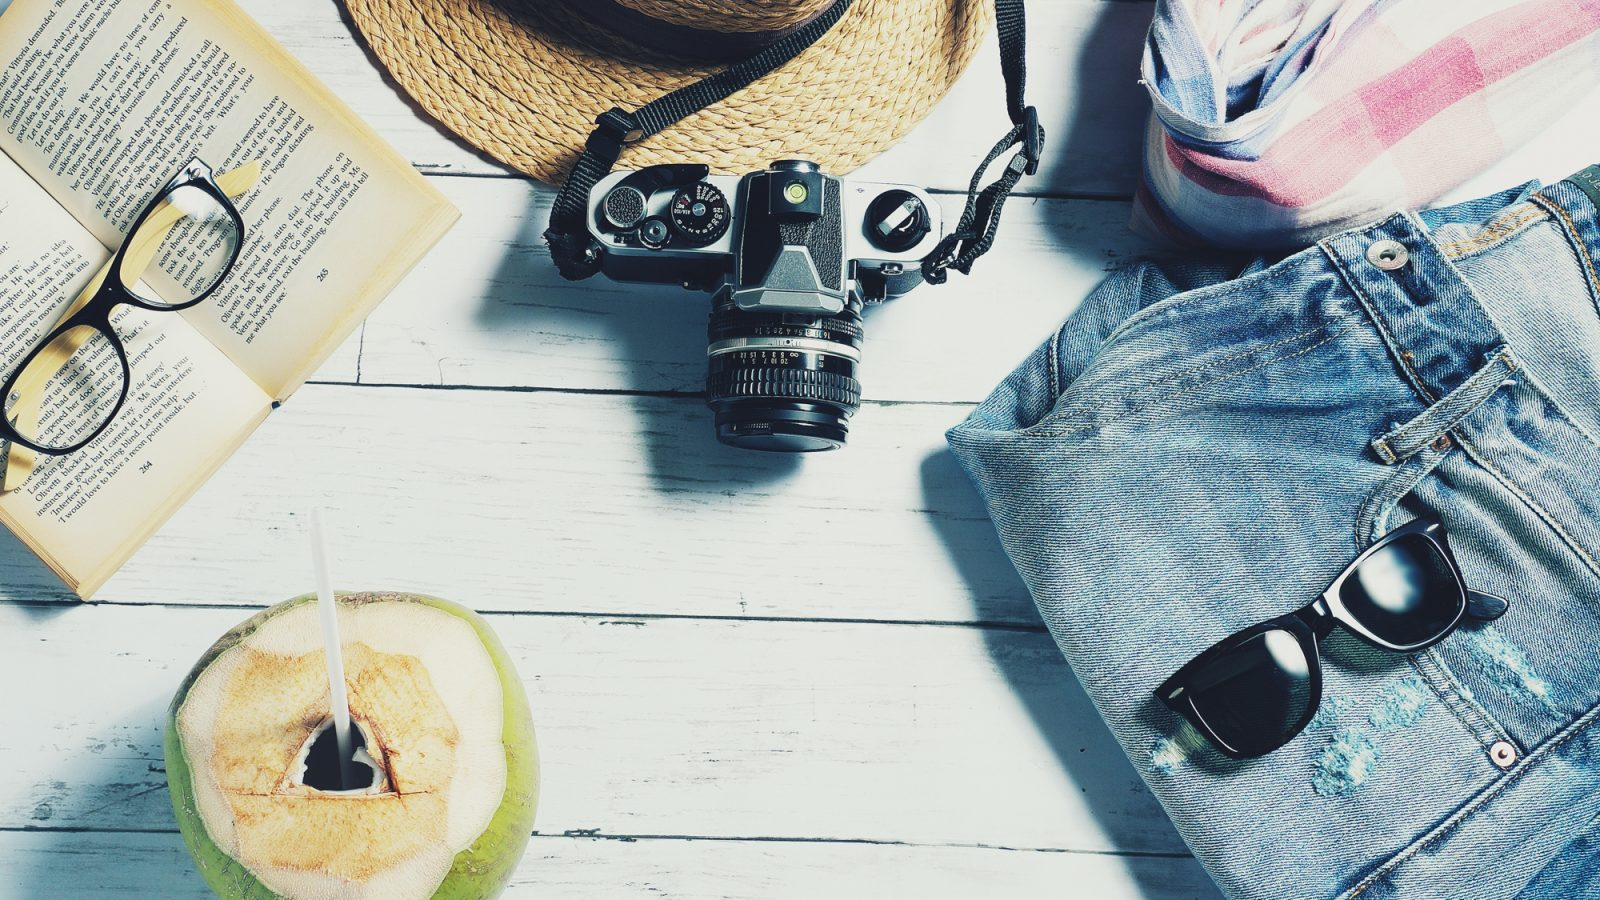 All my favorite travel gear and travel planning resources | travel blogging resources | travel blogging gear | best photography gear and travel accessories